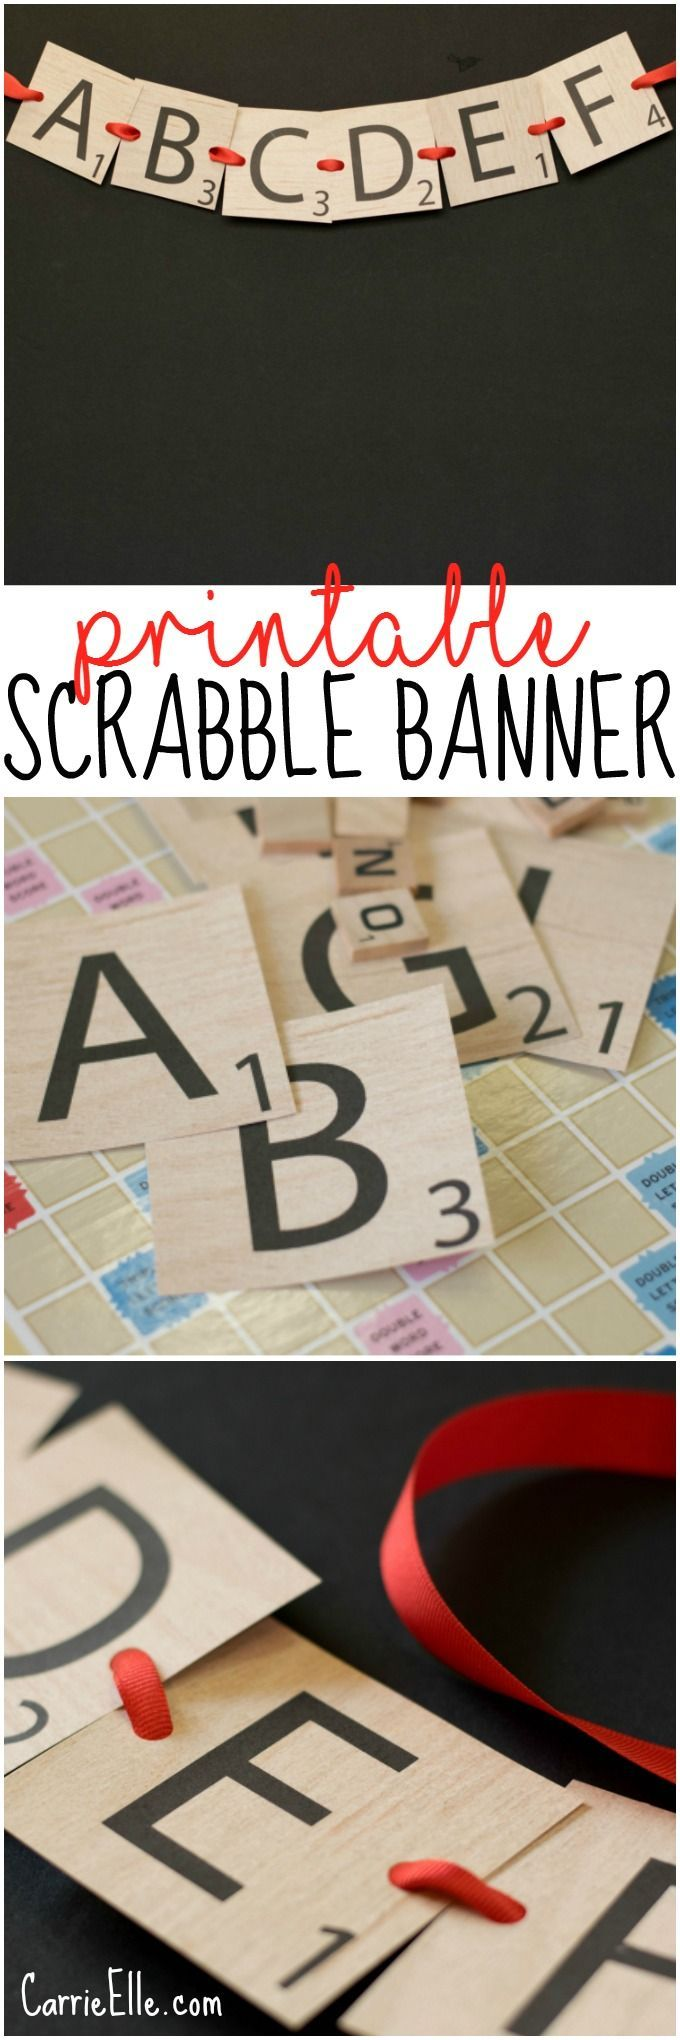 Scrabble Letter Printable Banner  Mommy Solutions